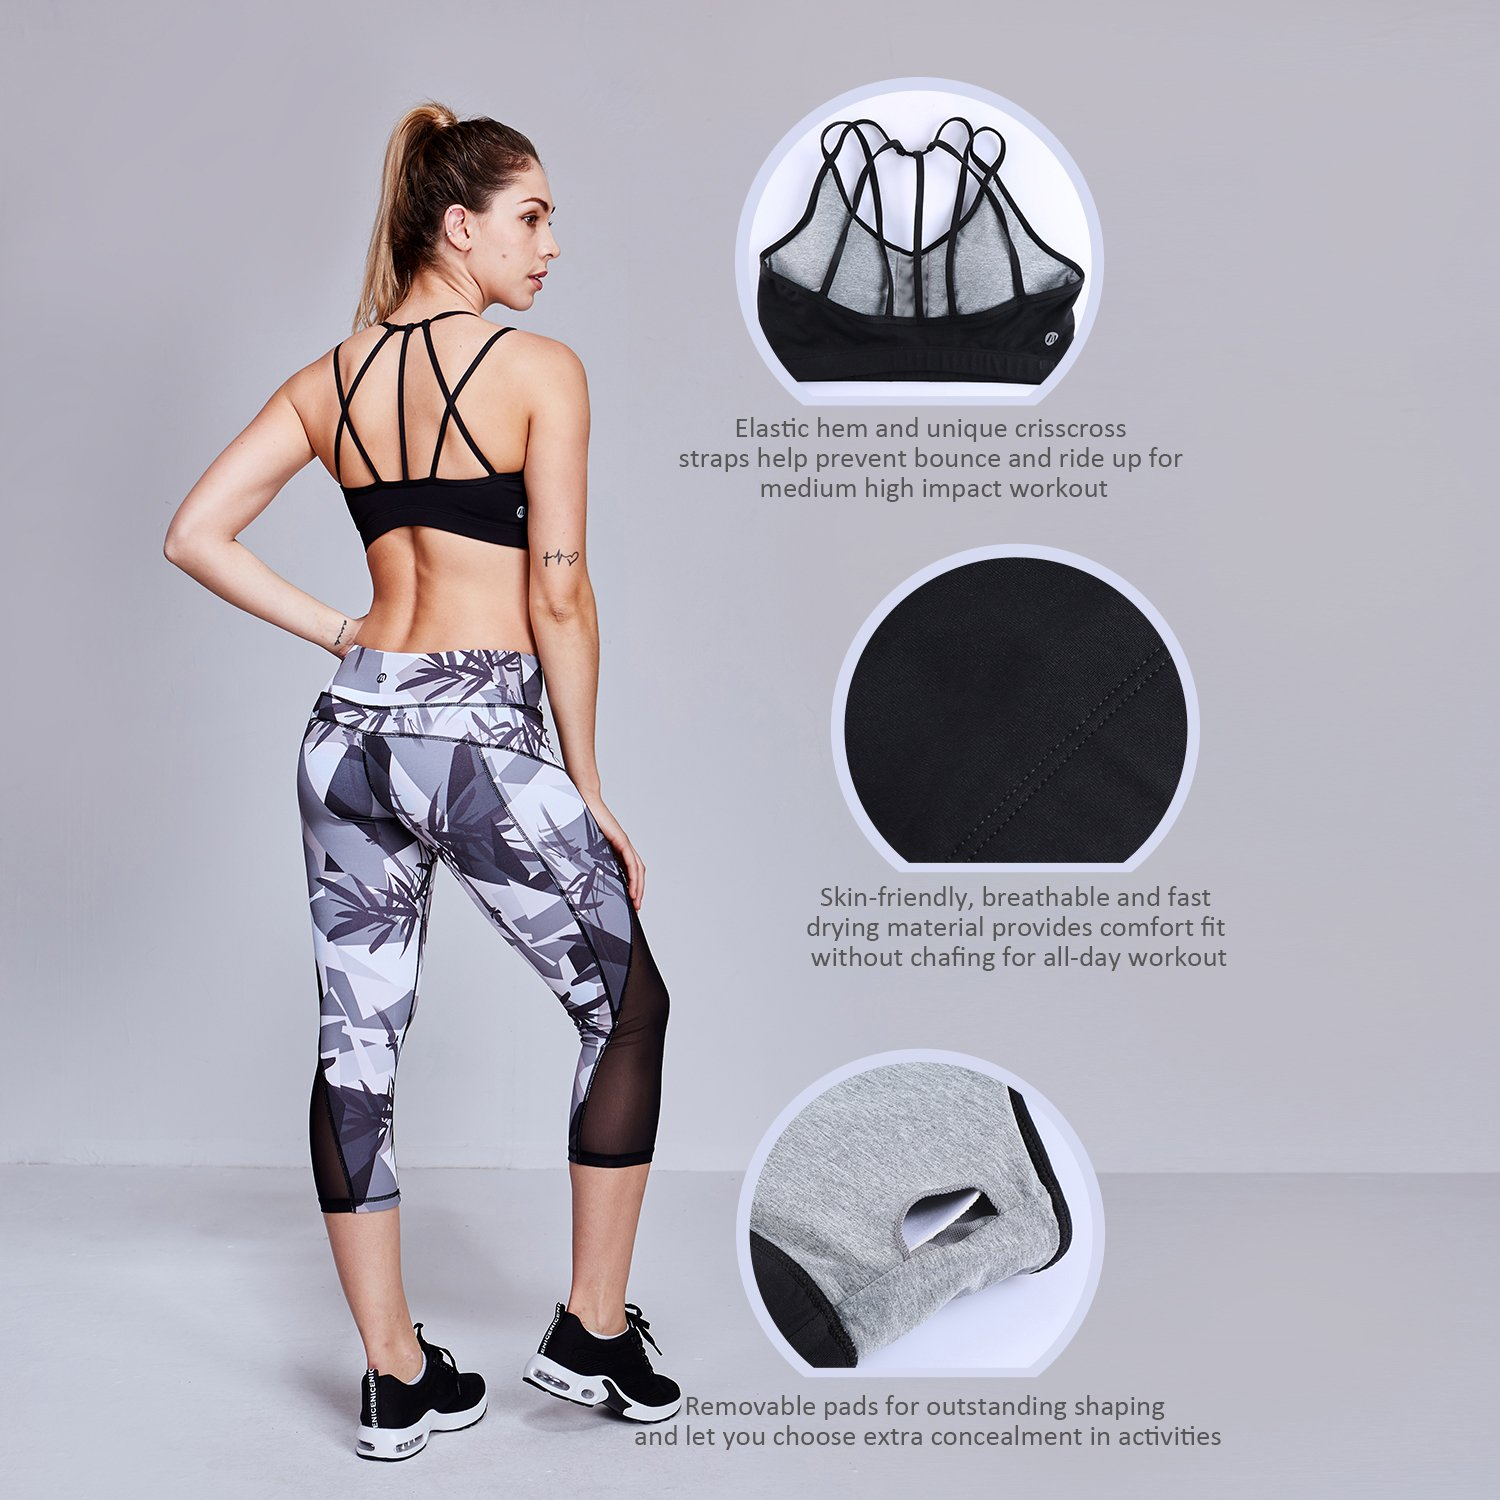 Matymats Active Strappy Sports Bra Medium Impact Workout Running Yoga Bra Tops with Removable Pads